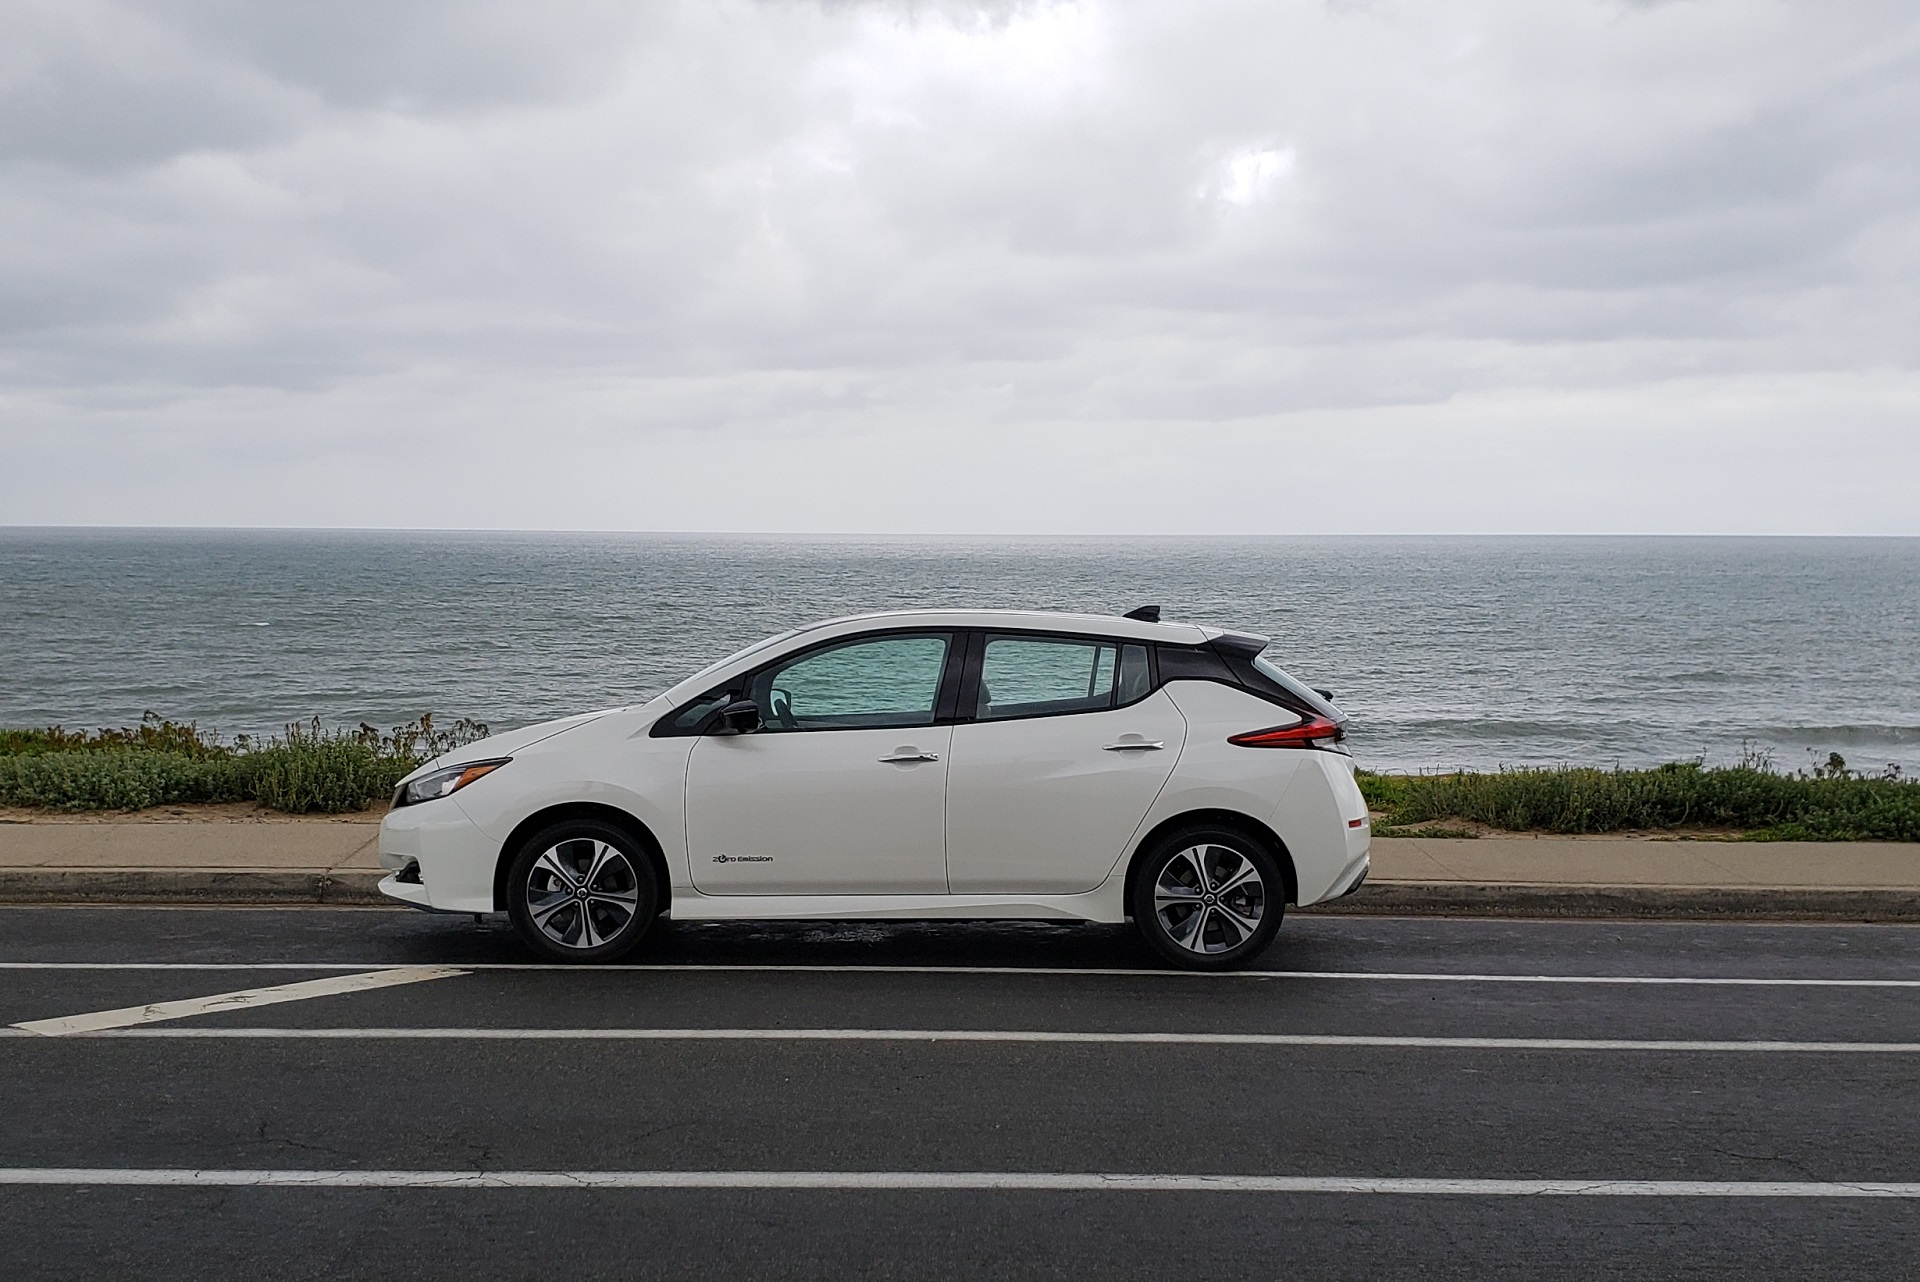 First Drive Review The 2019 Nissan Leaf Plus Delivers More 226 Mile Range At Last